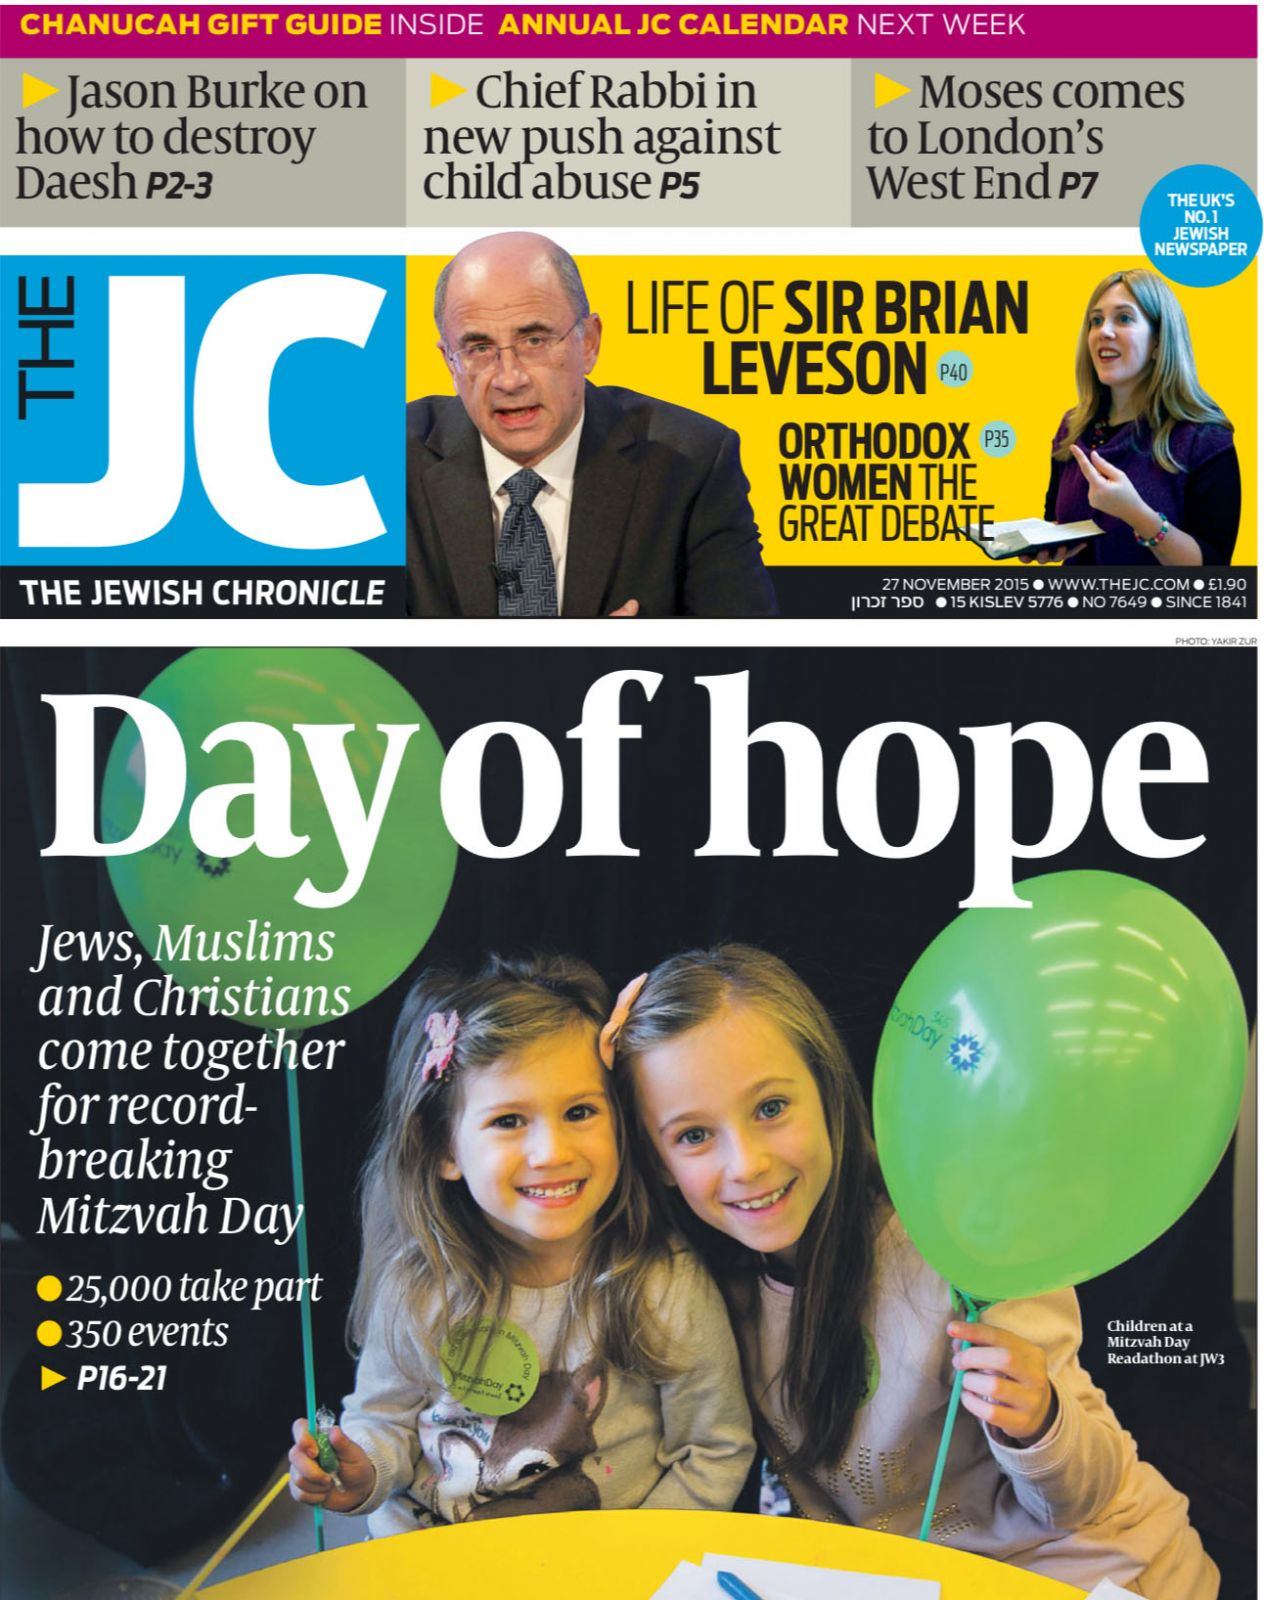 November 2015 - Mitzvah Day special editon of The Jewish Chronicle